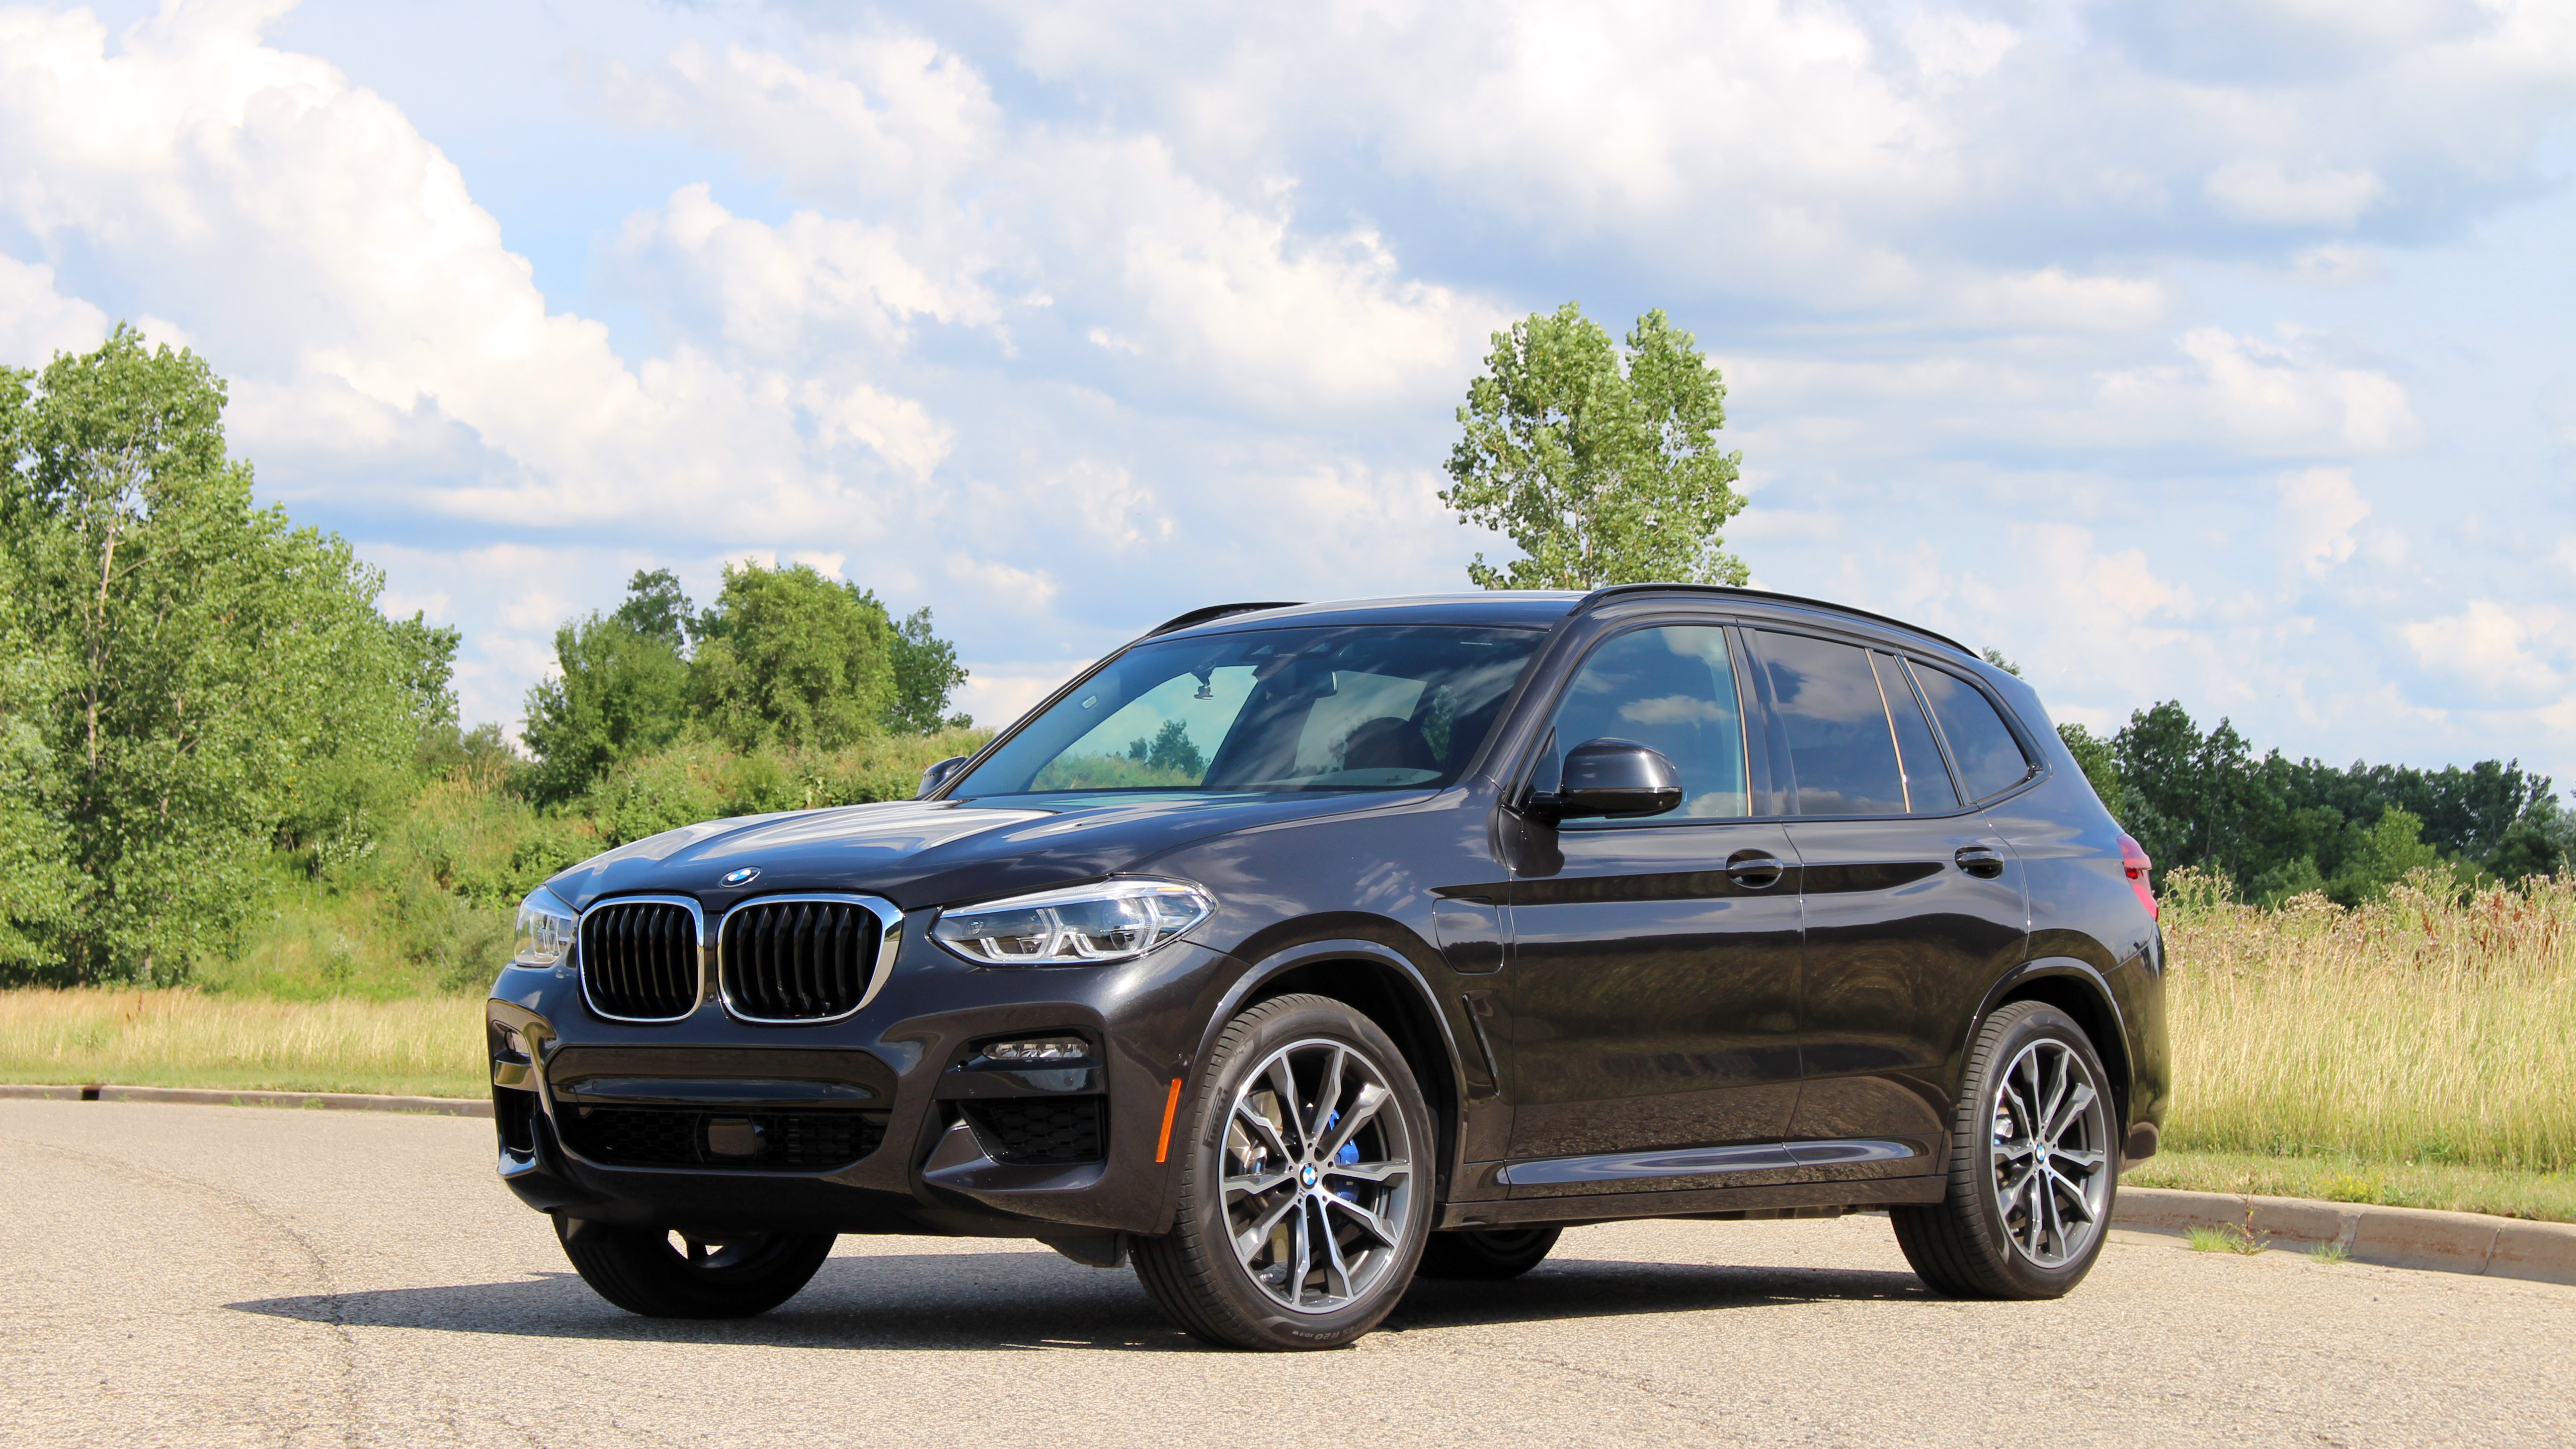 2020 Bmw X3 Review Price Specs Features And Photos Autoblog